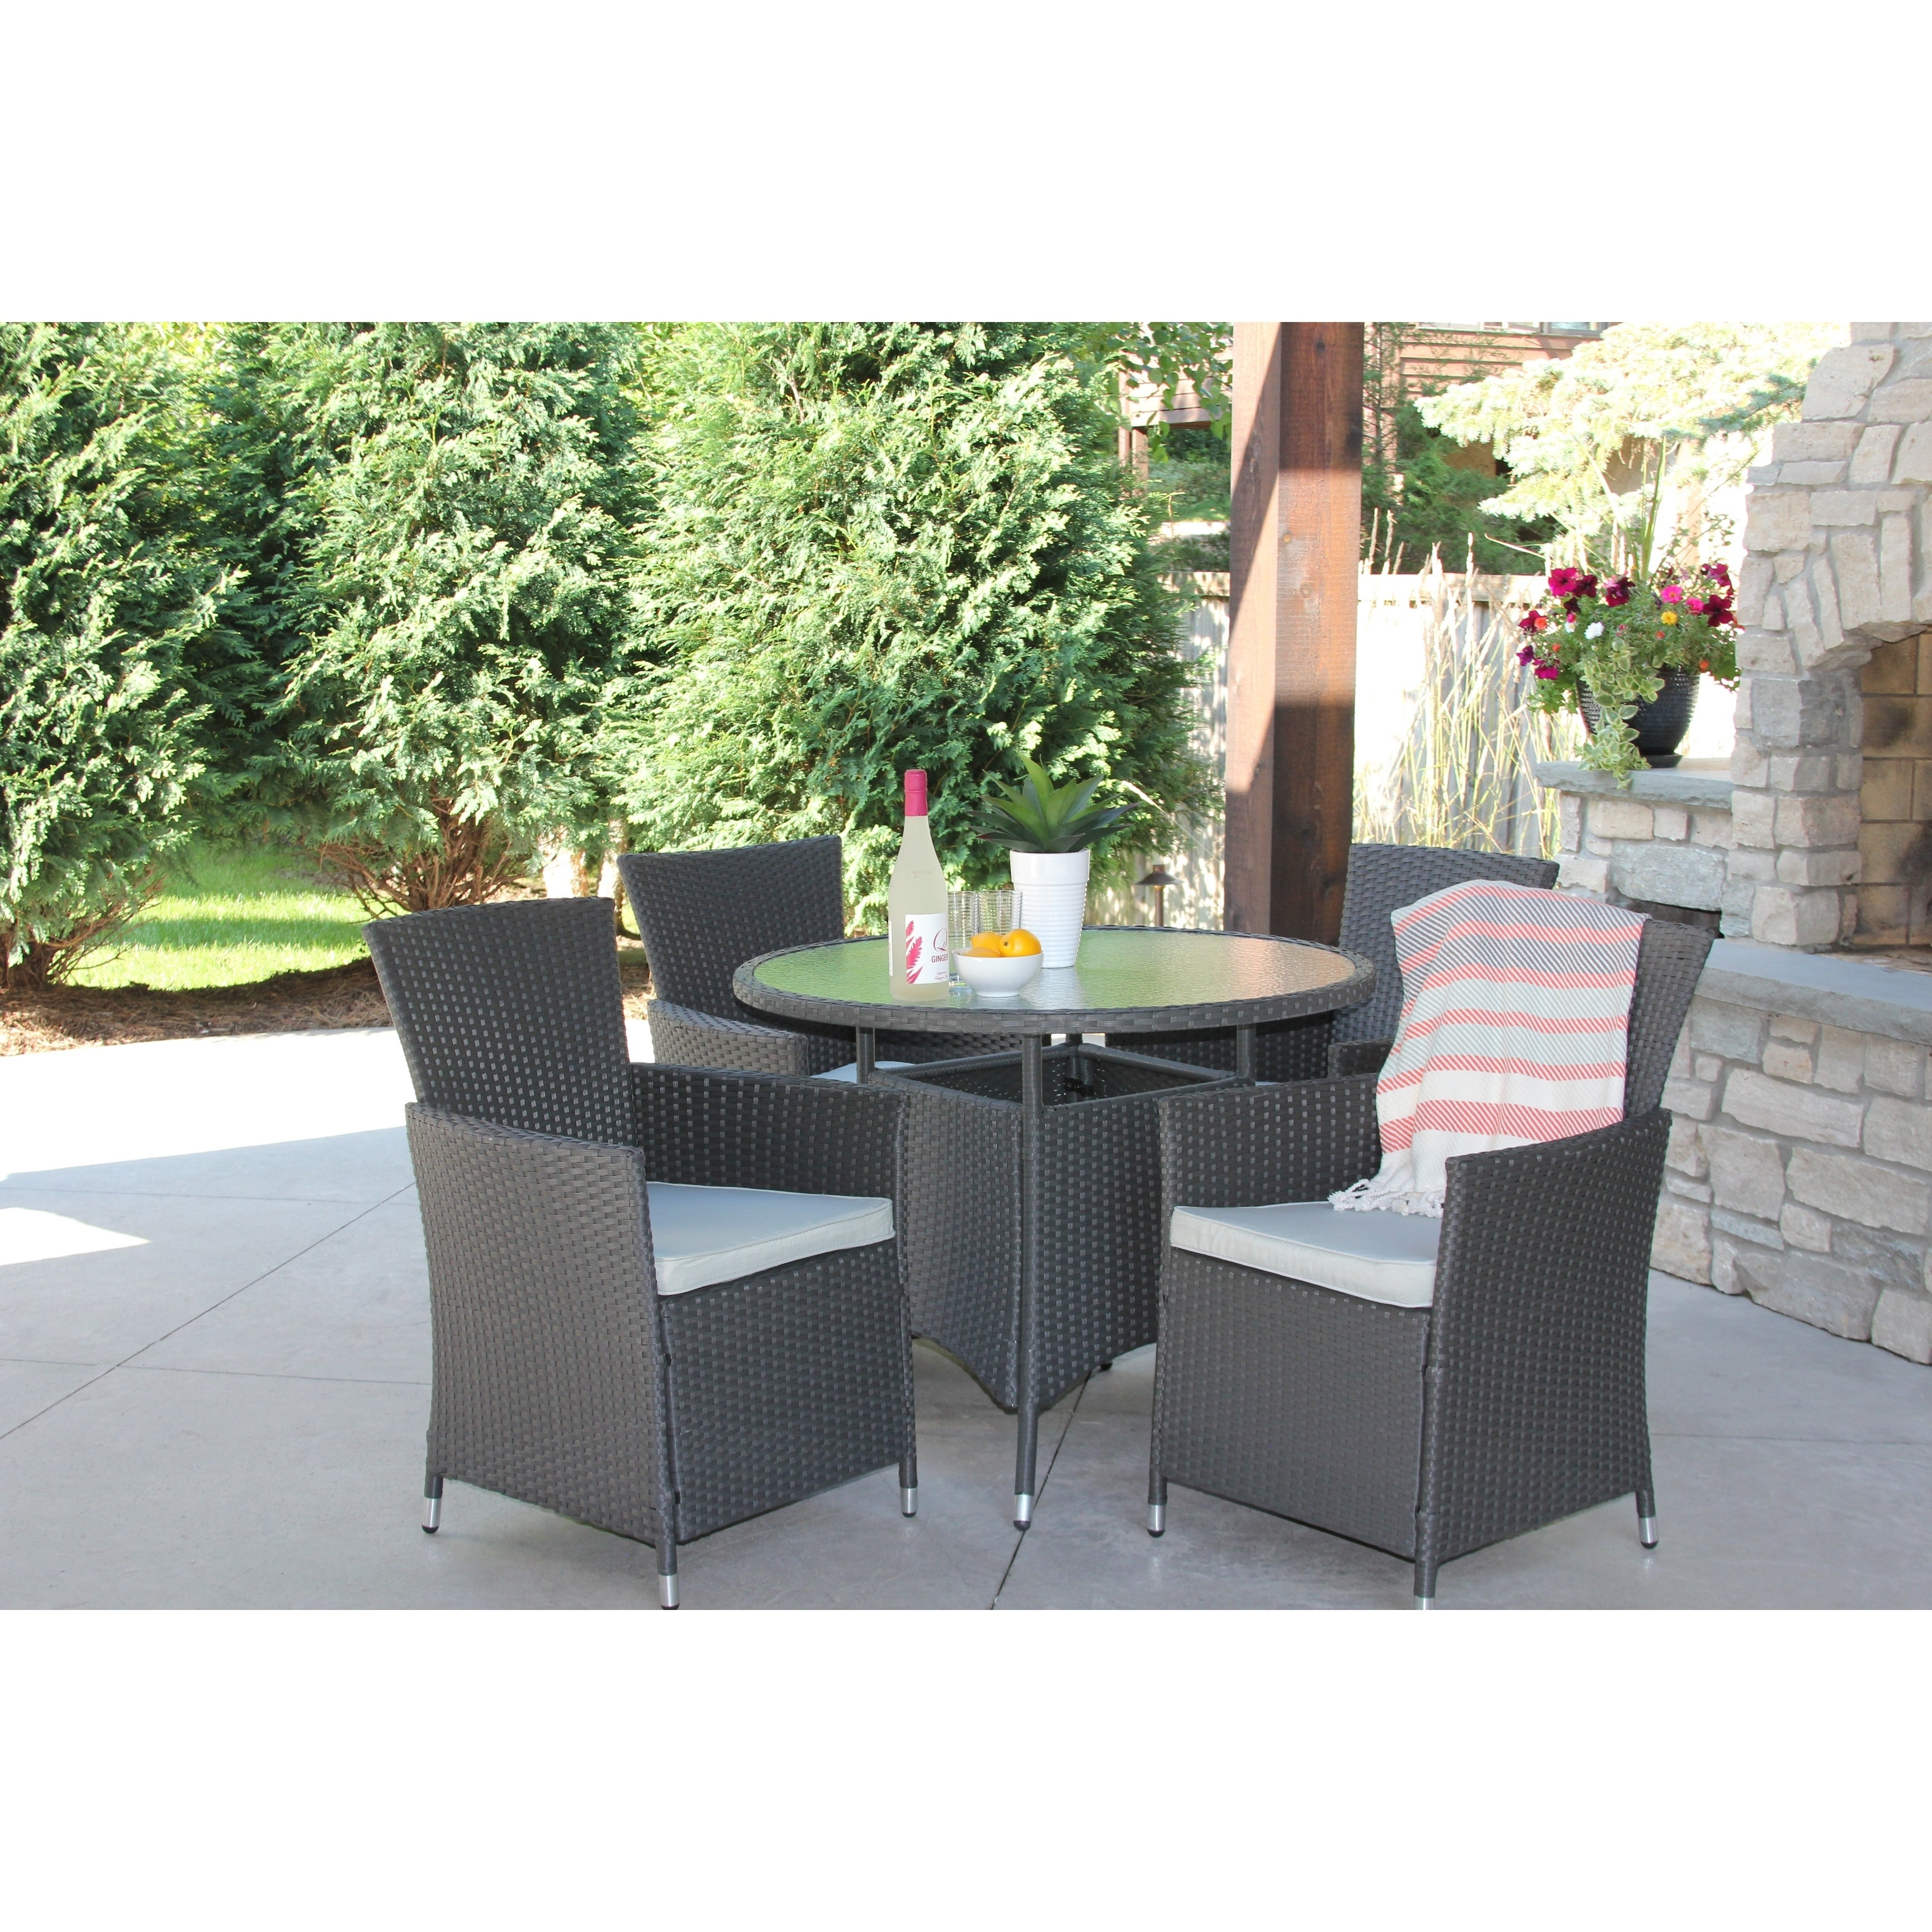 Gray Wicker 5 Piece Outdoor Dining Set With Round Recessed Glass Table Overstock 18653104